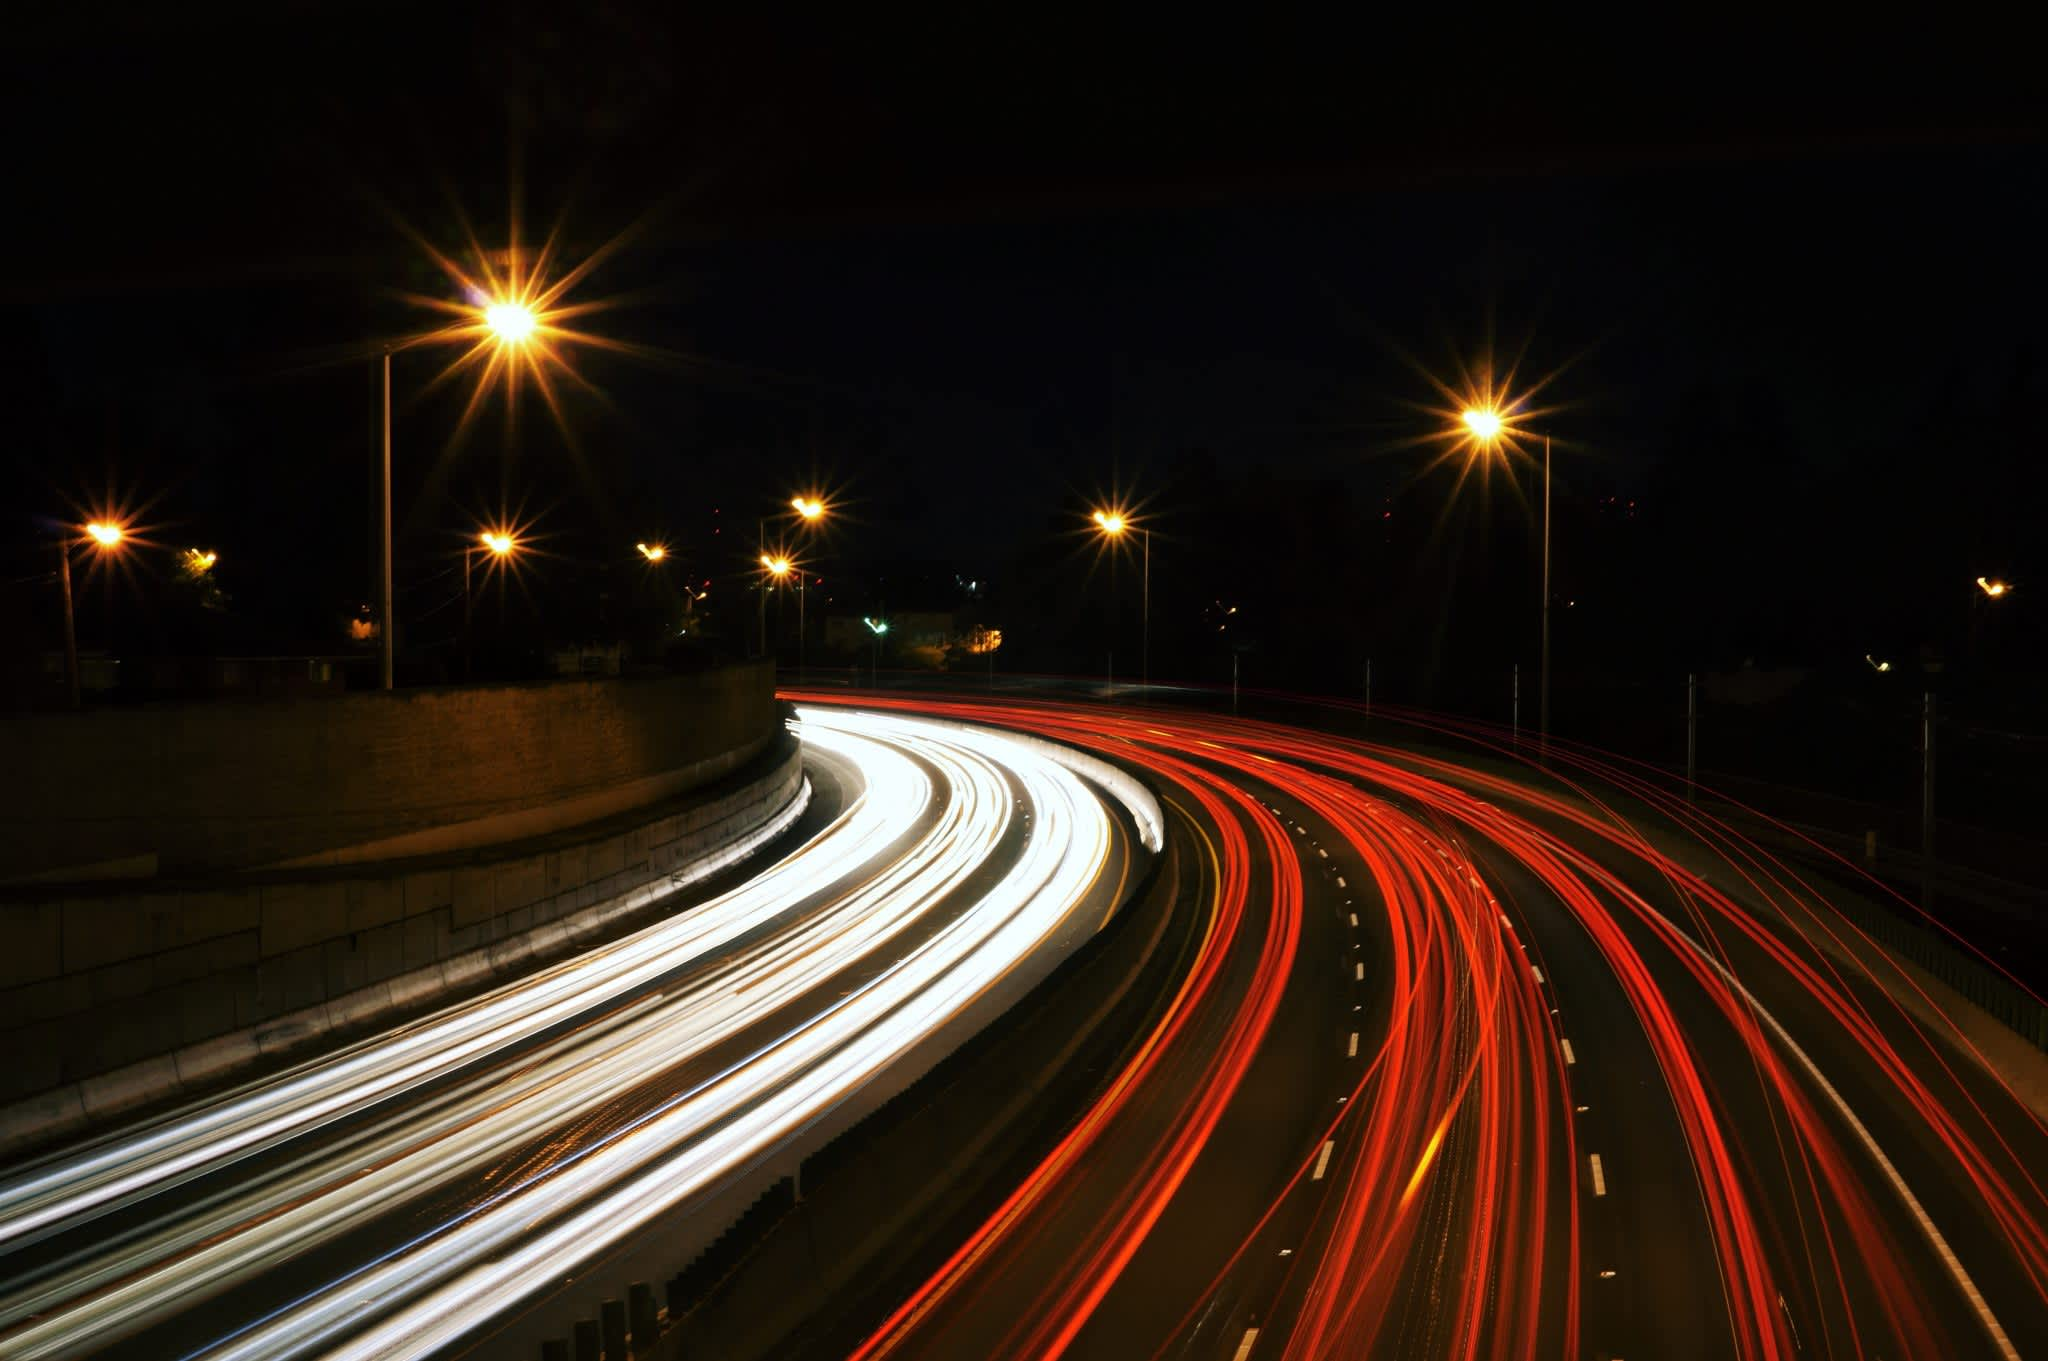 Lights on the highway